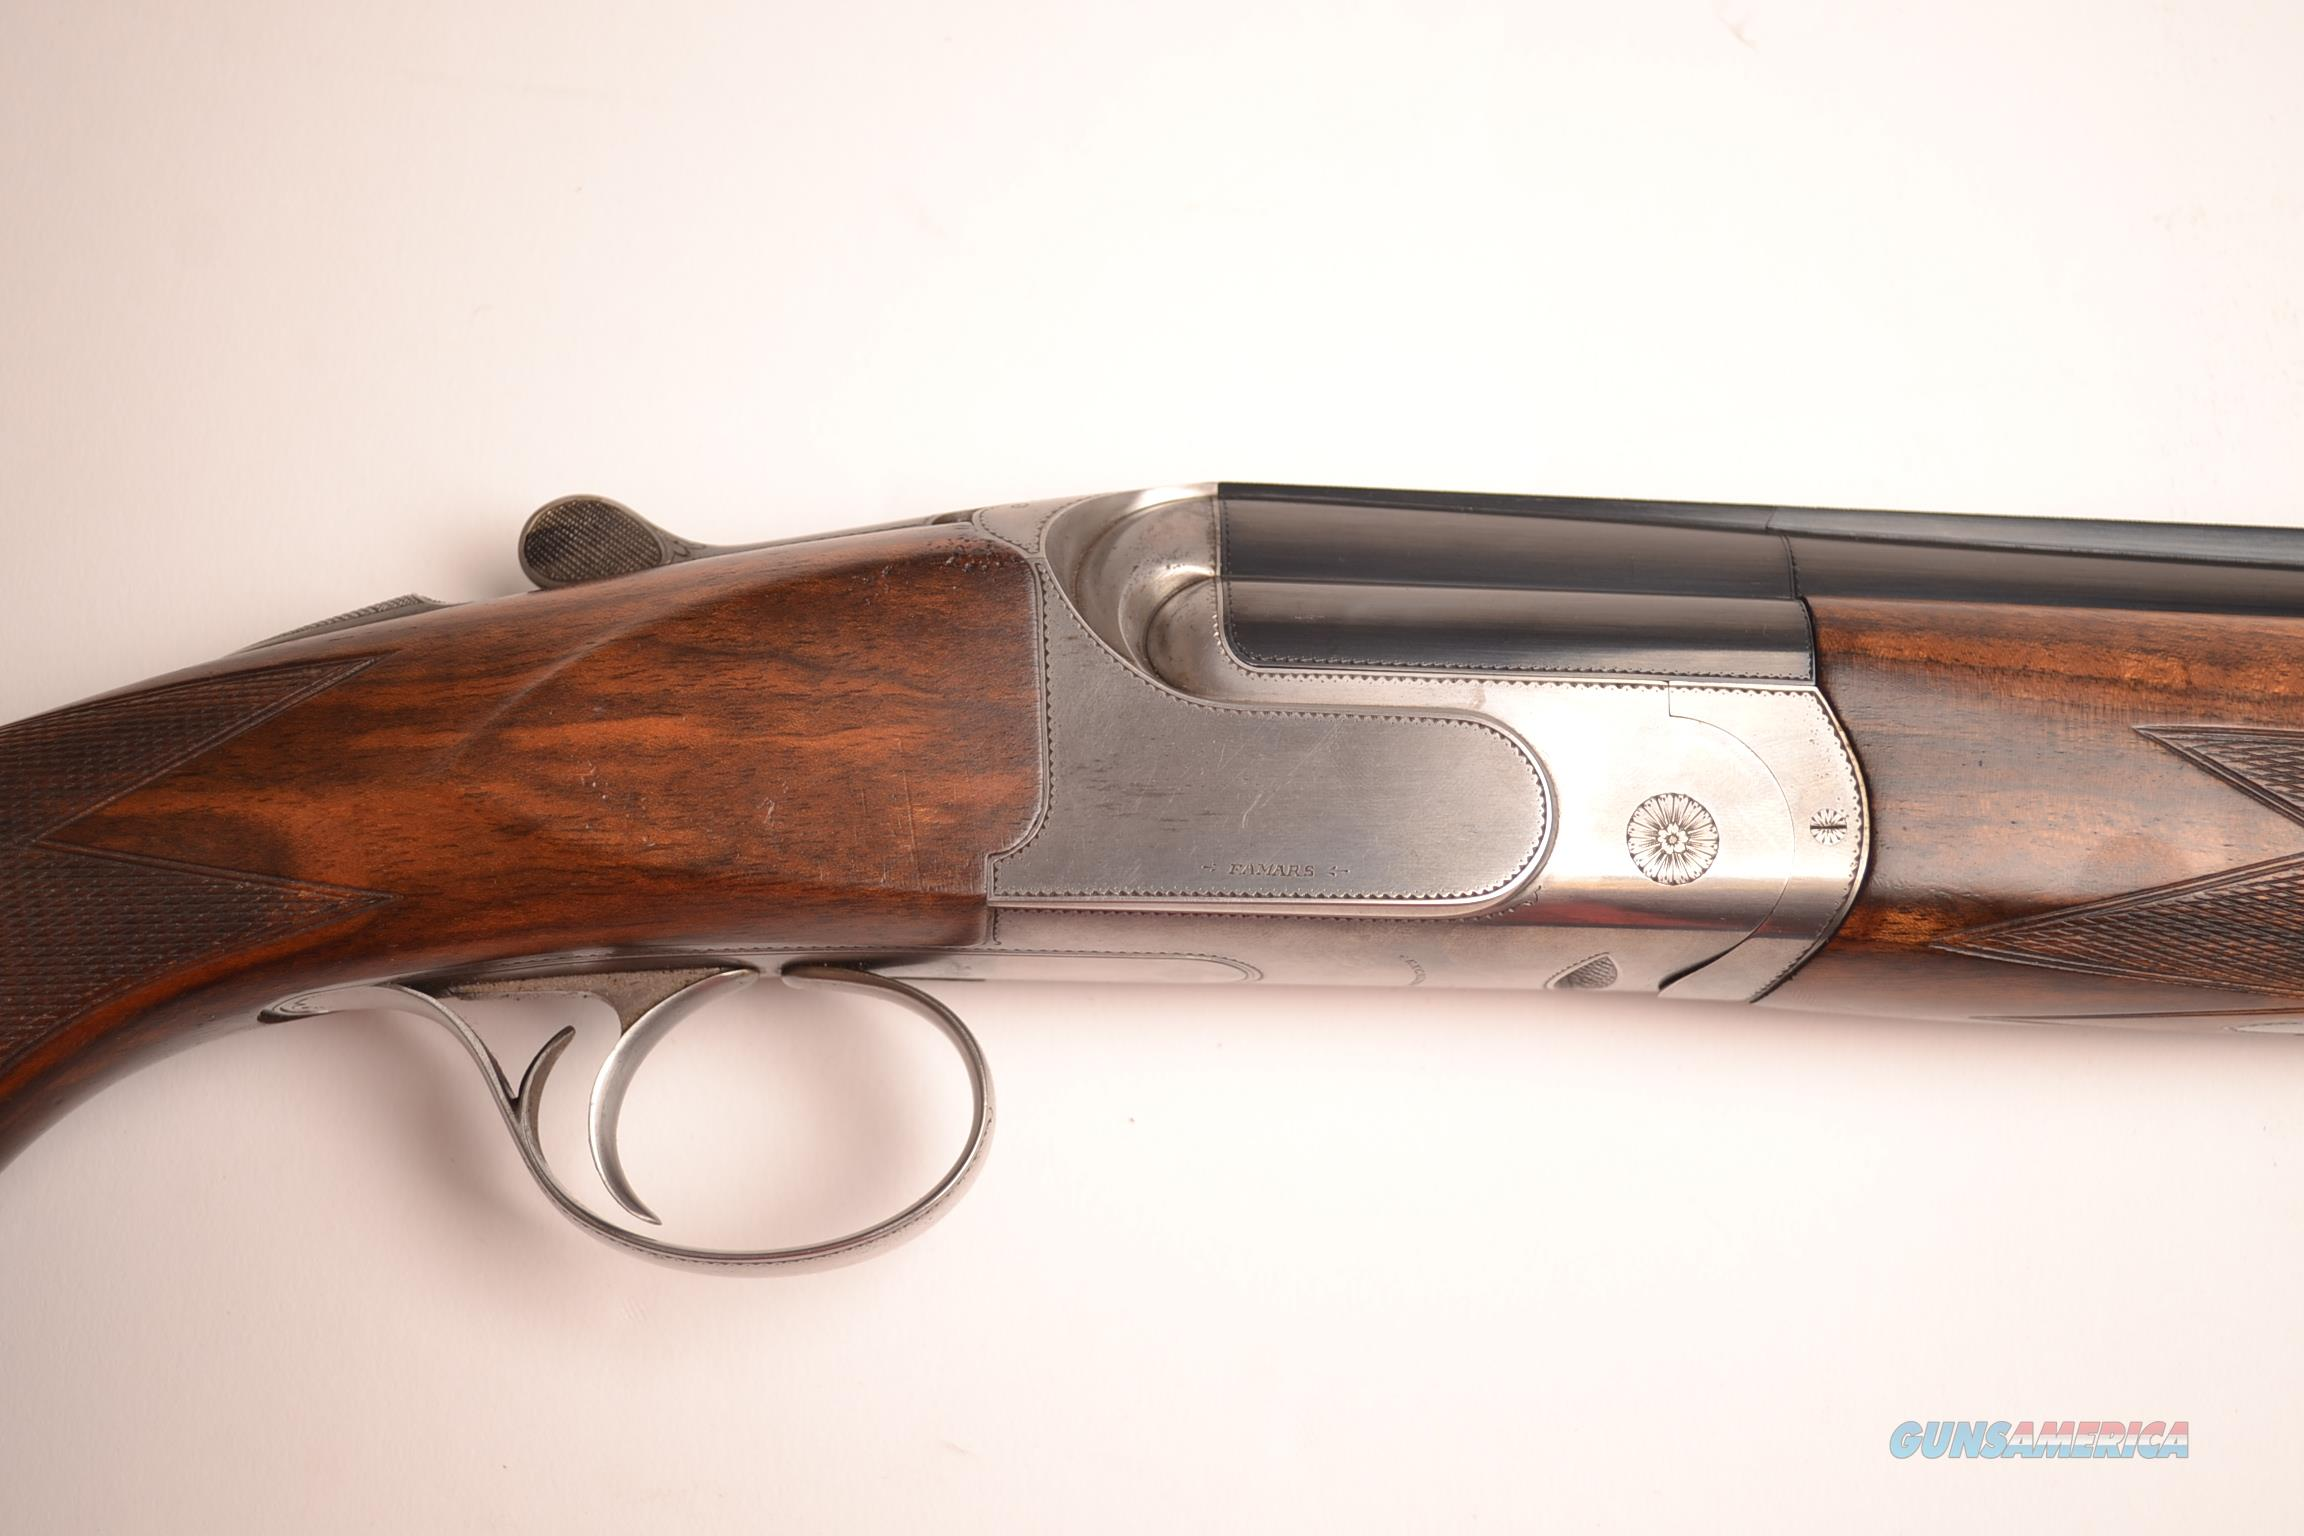 A&S Famars – Excalibur BL  Guns > Shotguns > Famars Shotguns